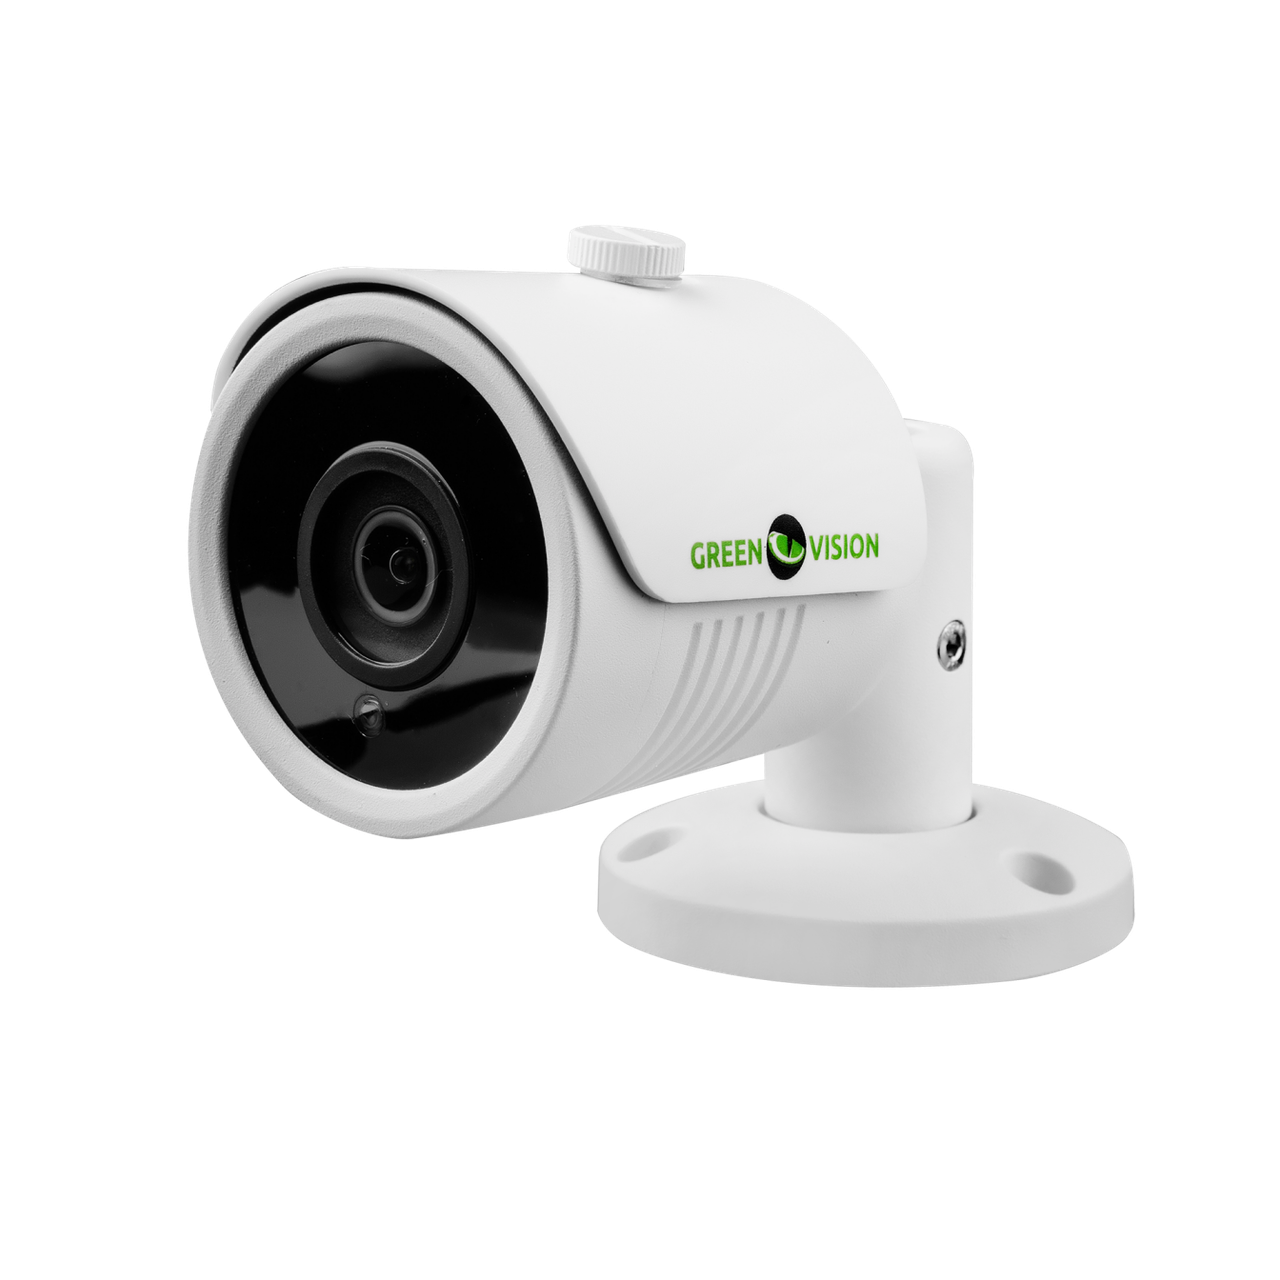 БУ Наружная IP камера GreenVision GV-005-IP-E-COS24-25 POE (Ultra)